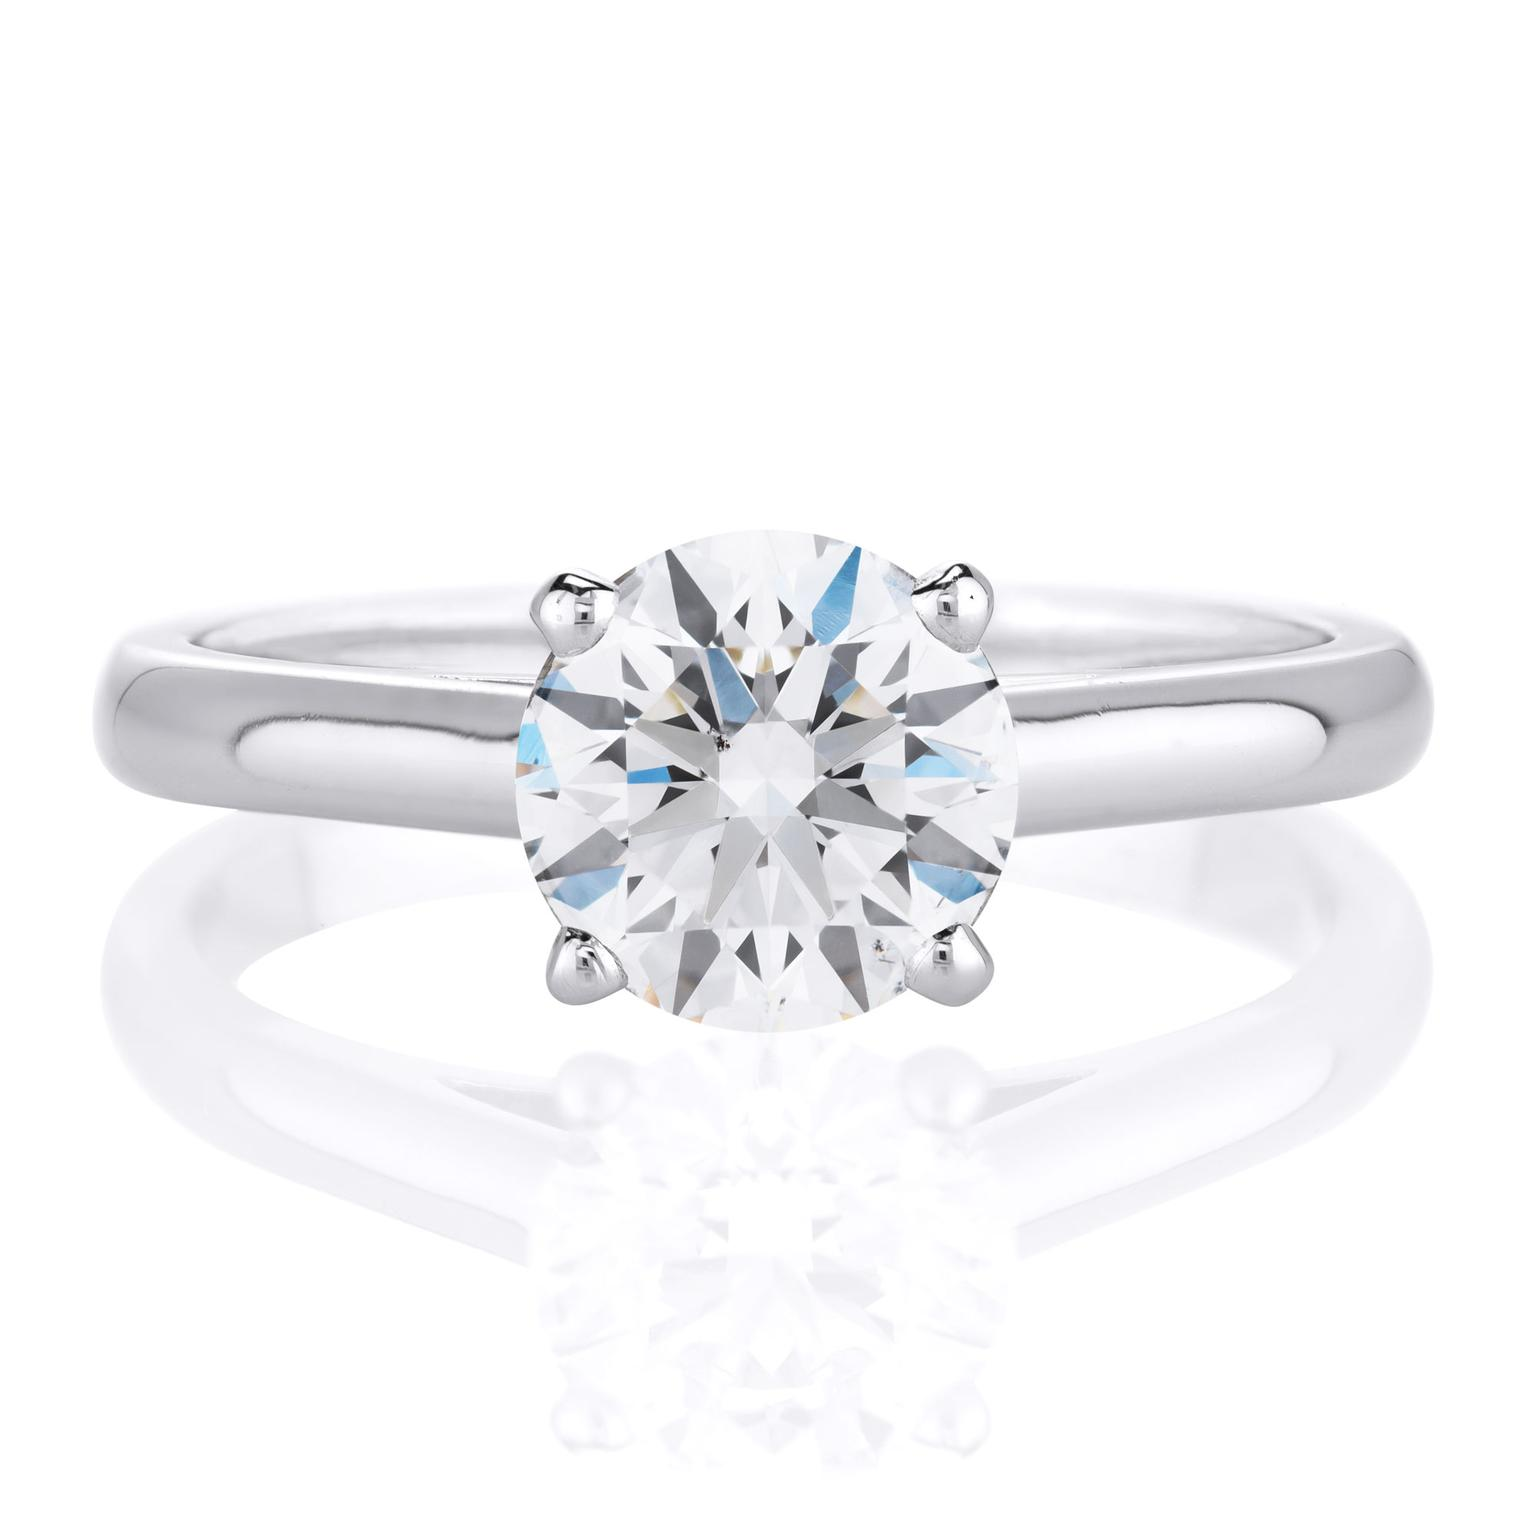 Should I a 1 carat diamond engagement ring or 2 carats